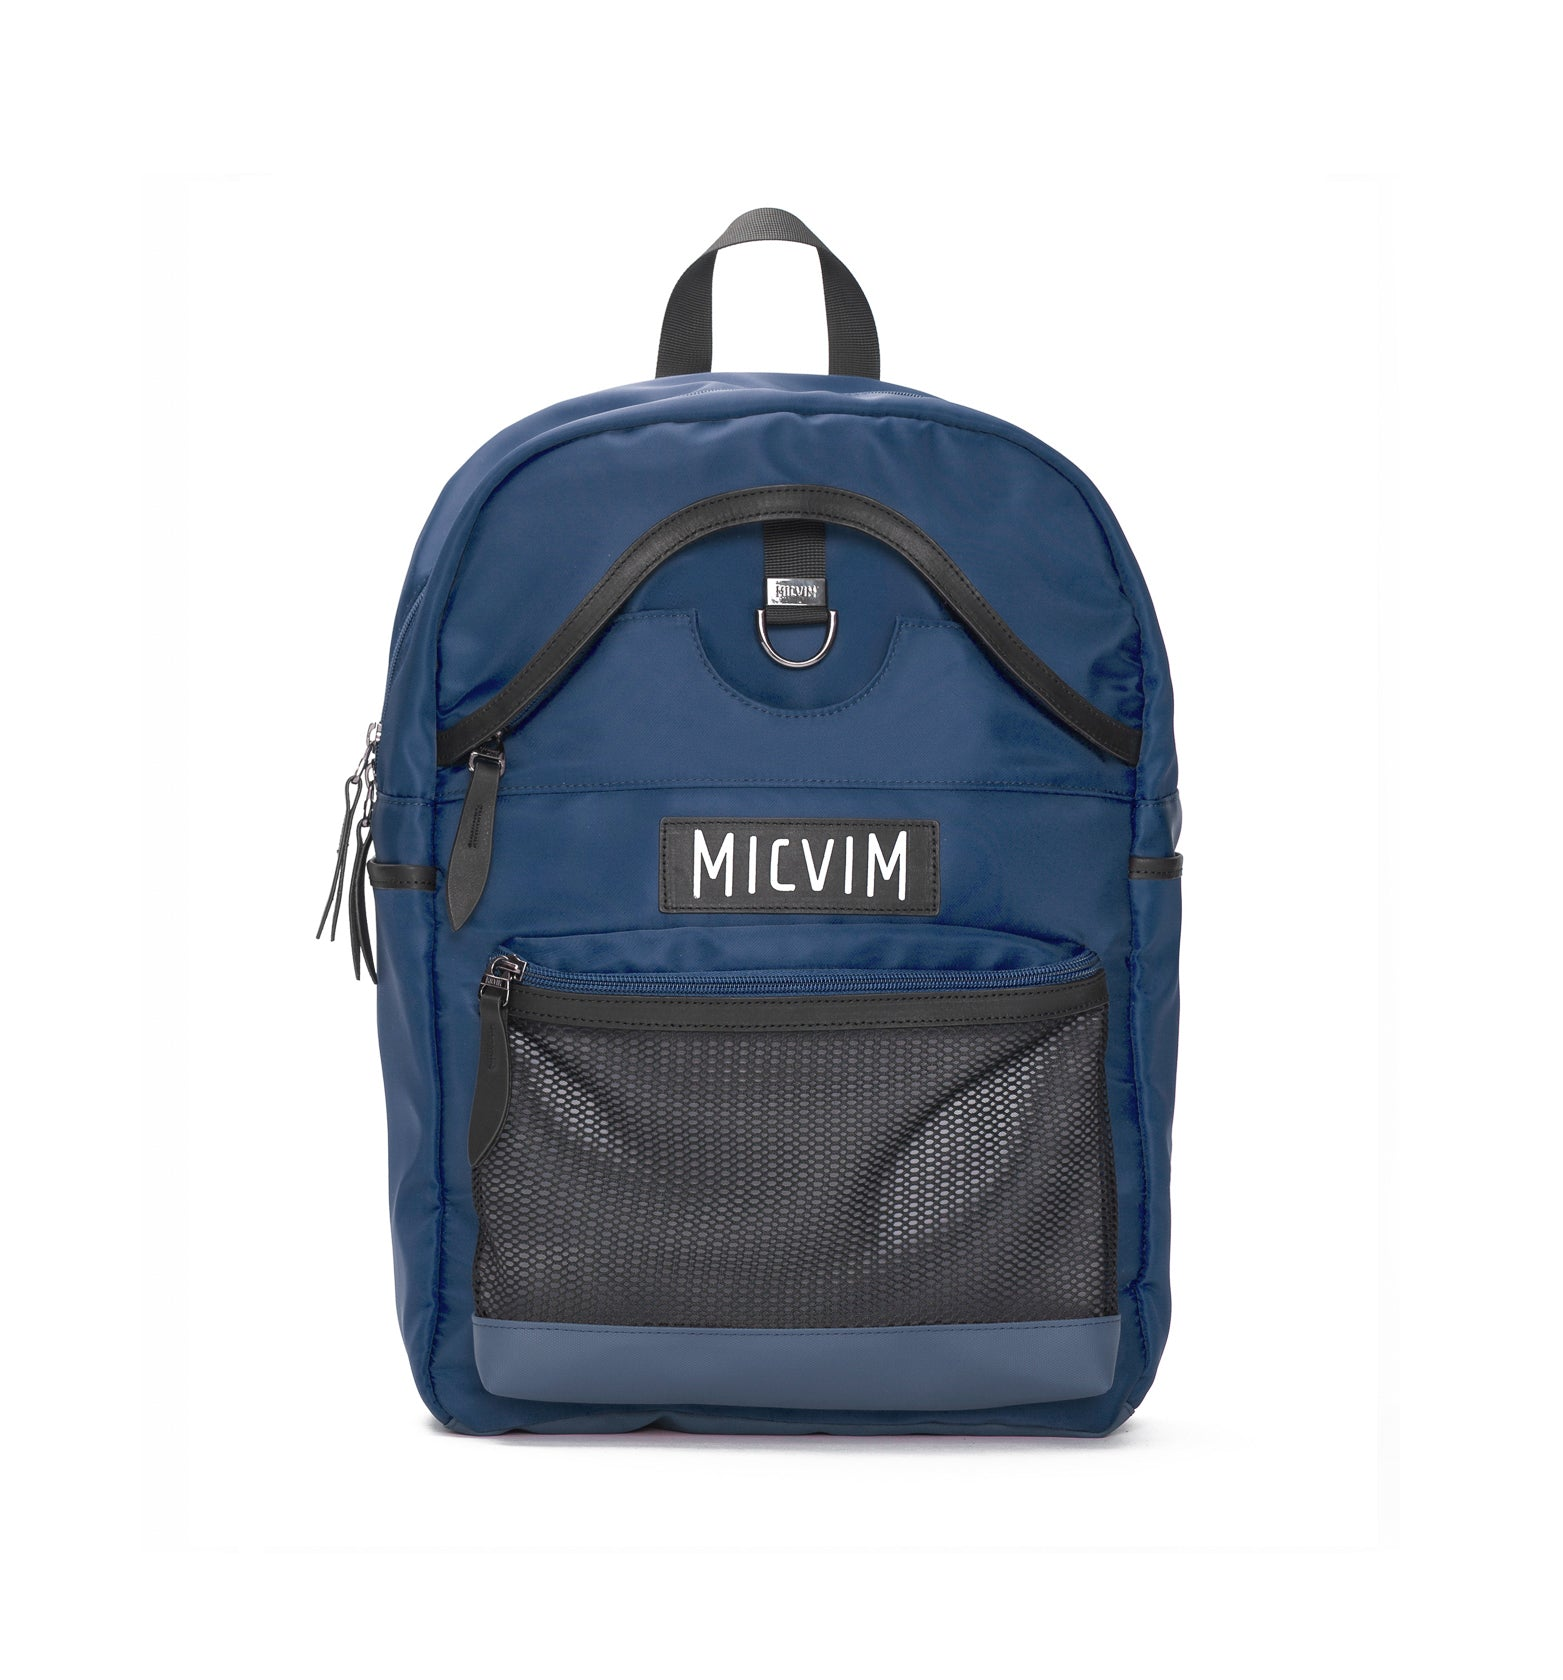 Basic Backpack in Blue